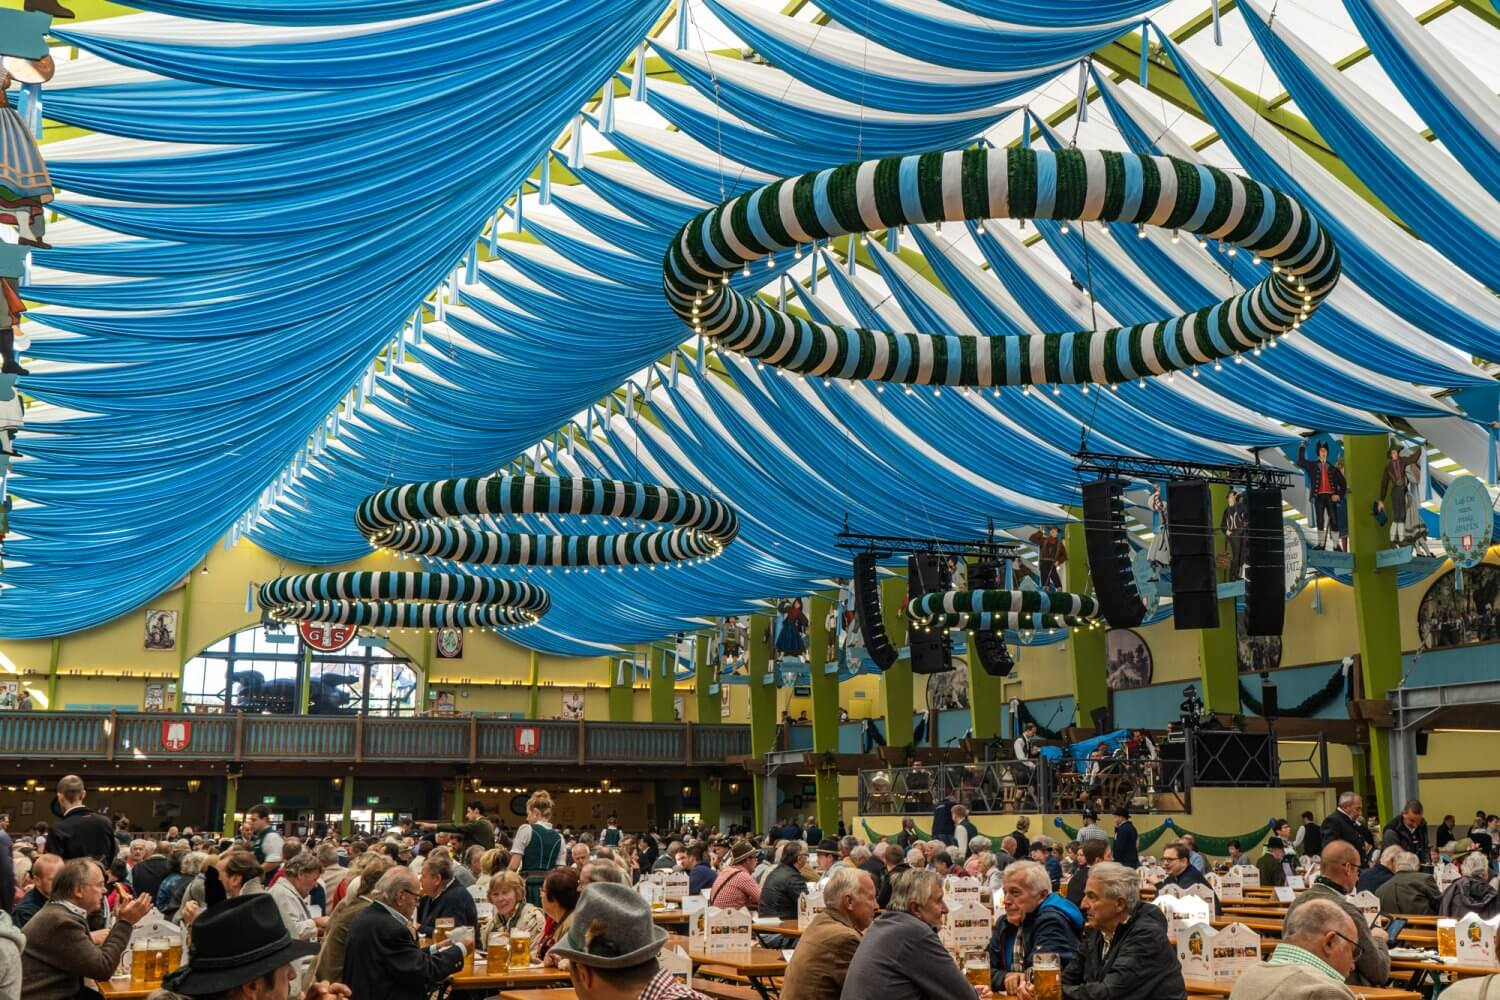 An inside peek at the Ochsenbraterei at Oktoberfest